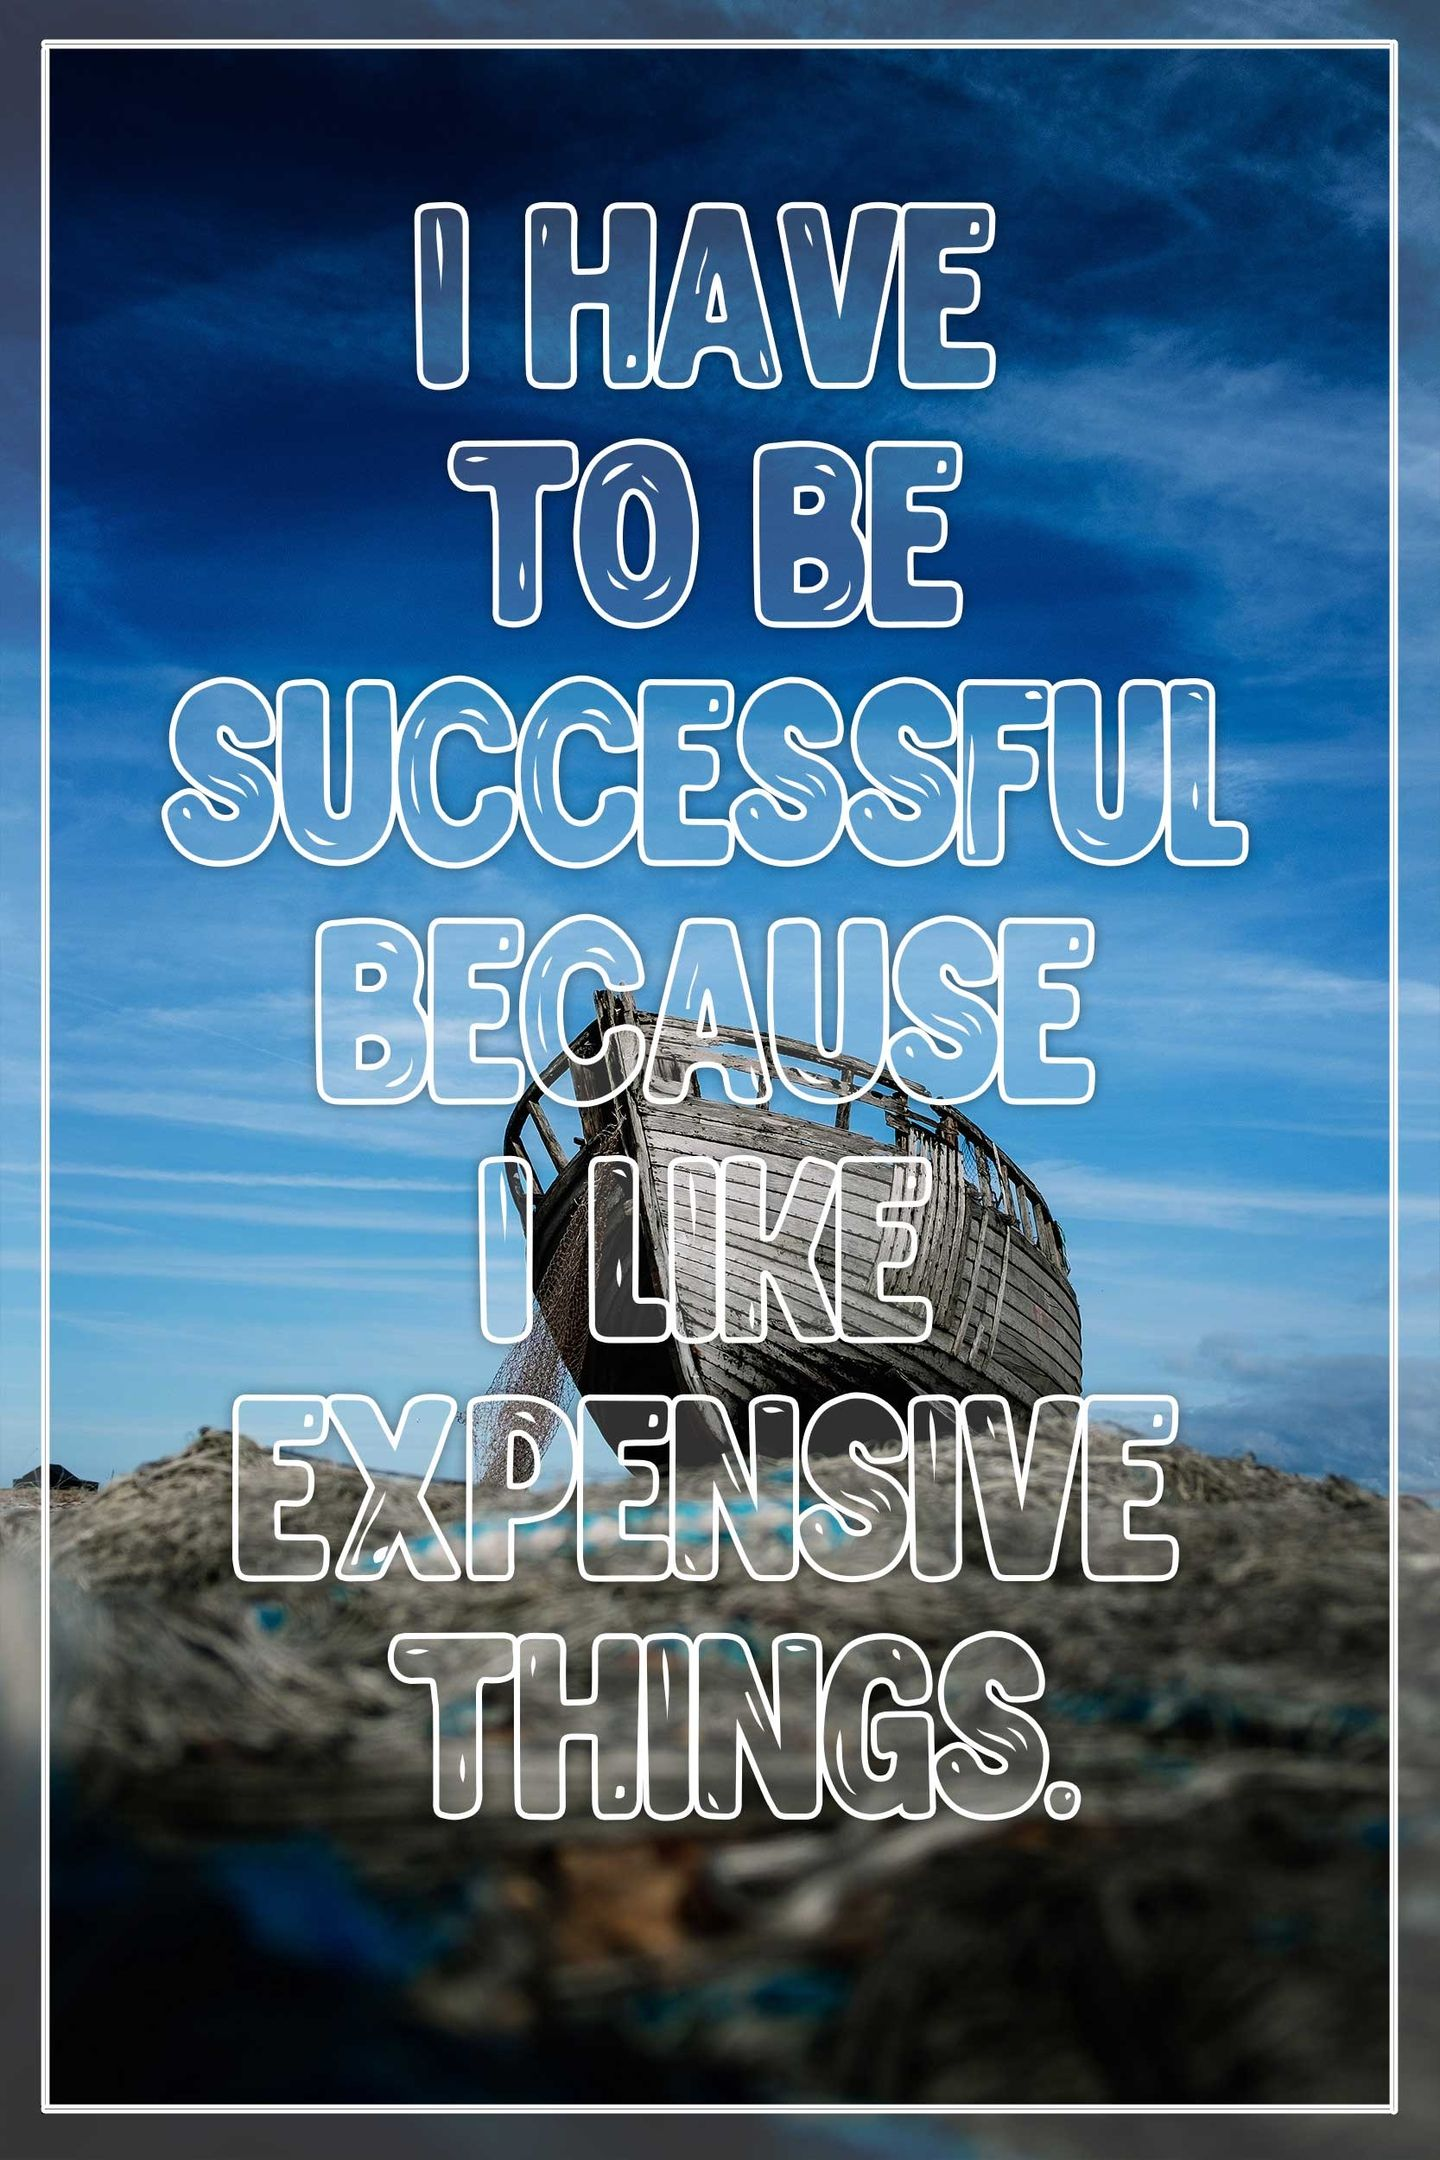 Be successful ! | Motivational quotes for success